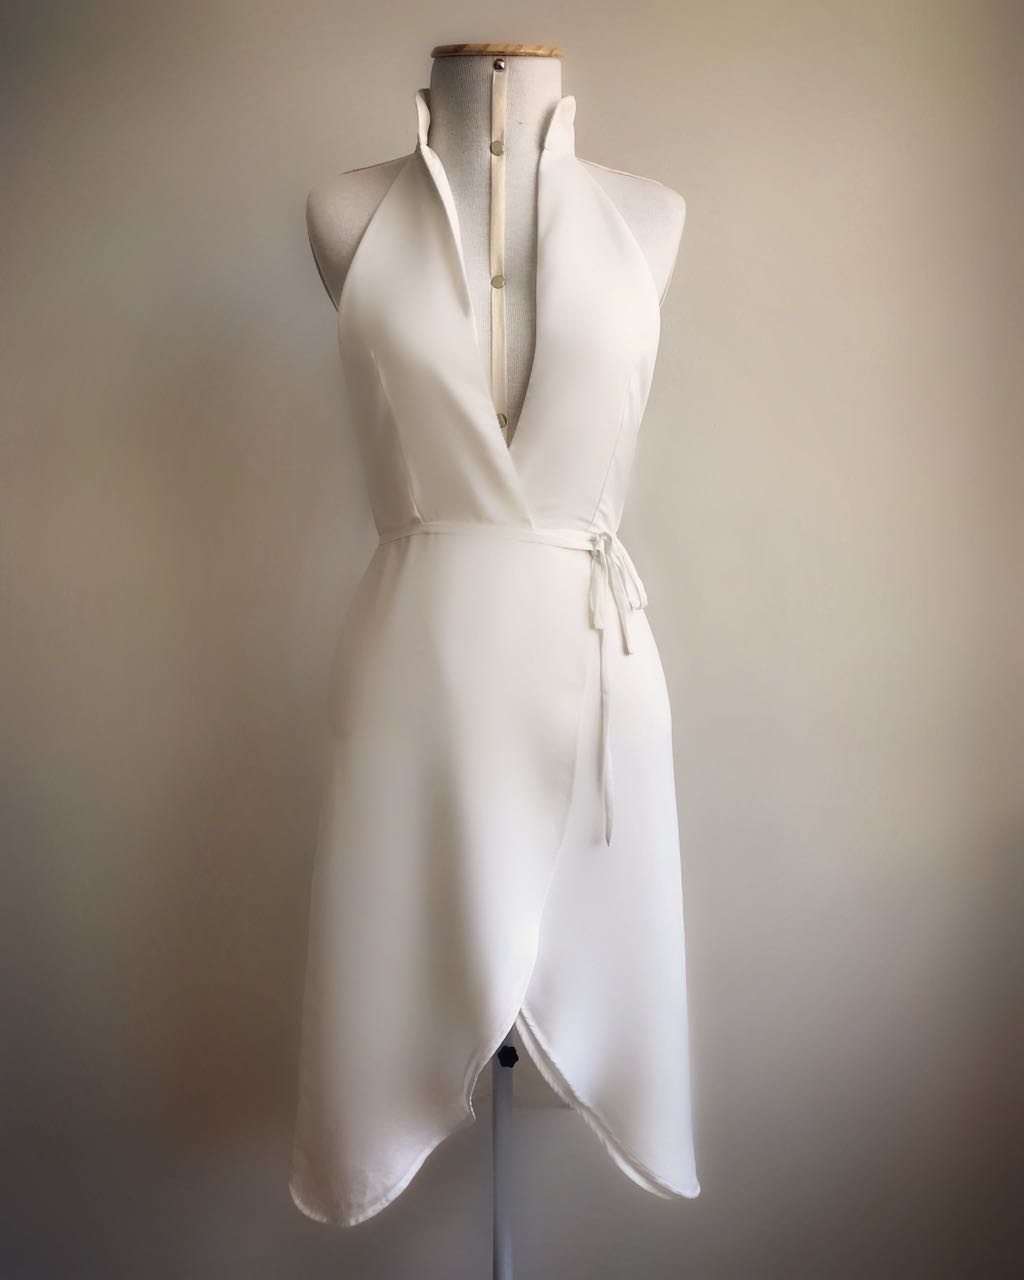 Shaya - LAB DRESS #LABDRESS